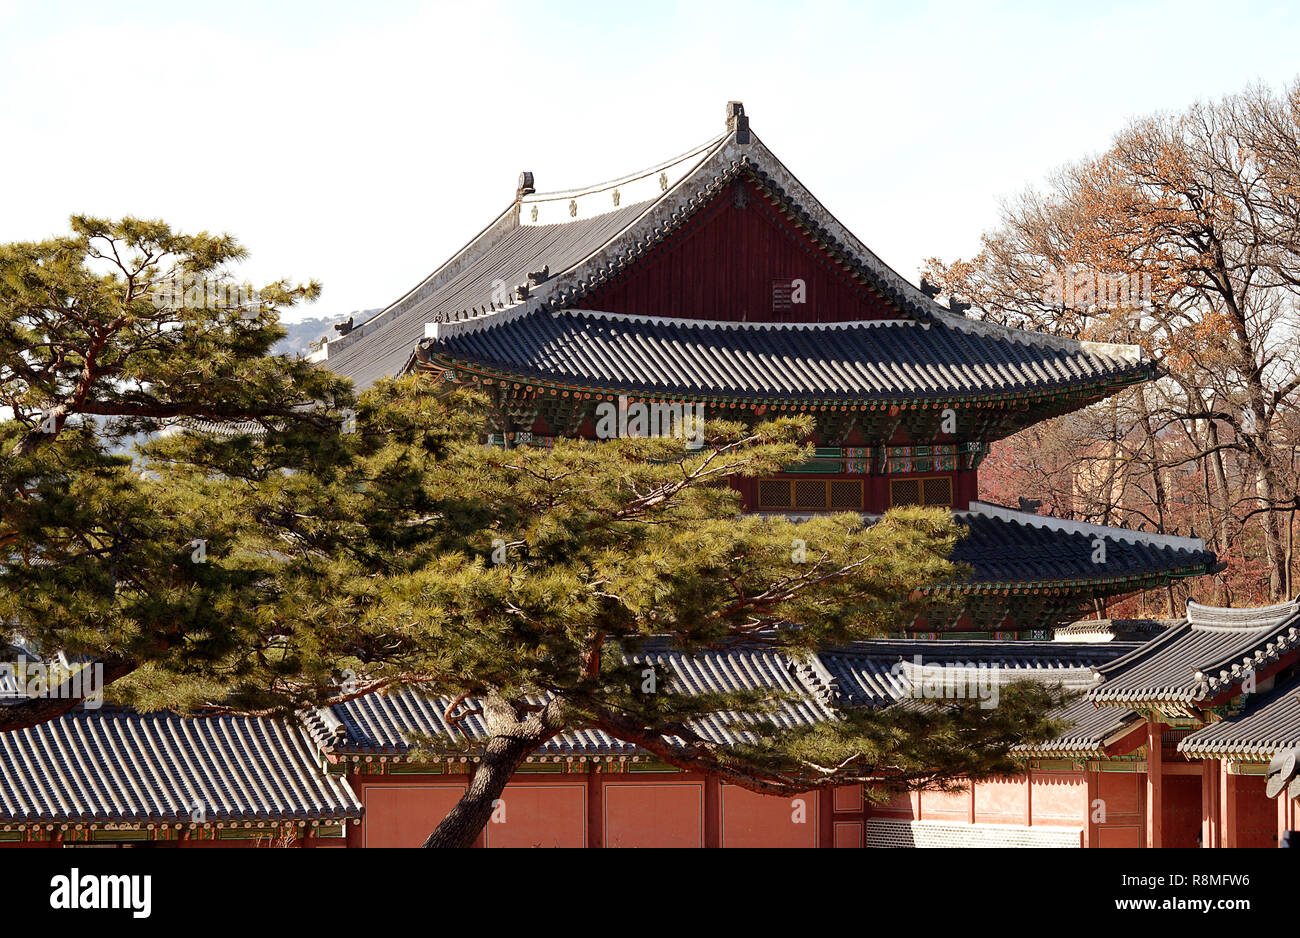 Hipped roofs, tiles, painted decorations, hermits, monks and monsters on the roof as guardians, typical Korean palatial architecture with Korean pine - Stock Image